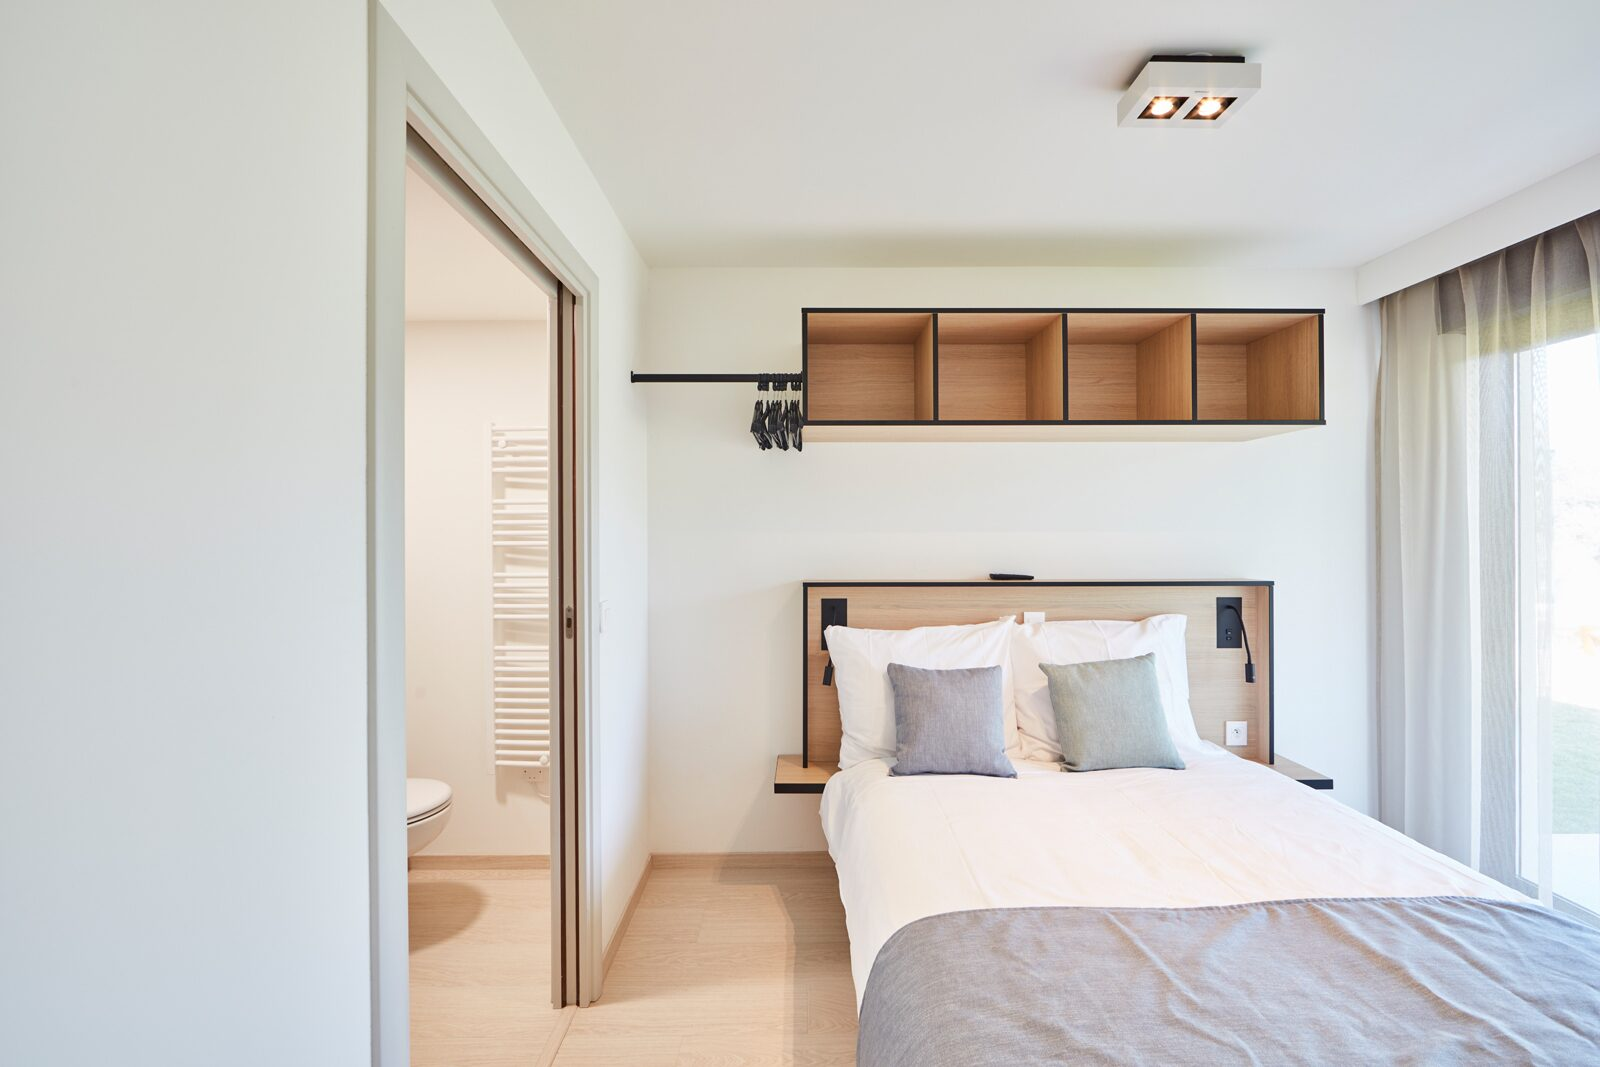 New family suite for 6 people